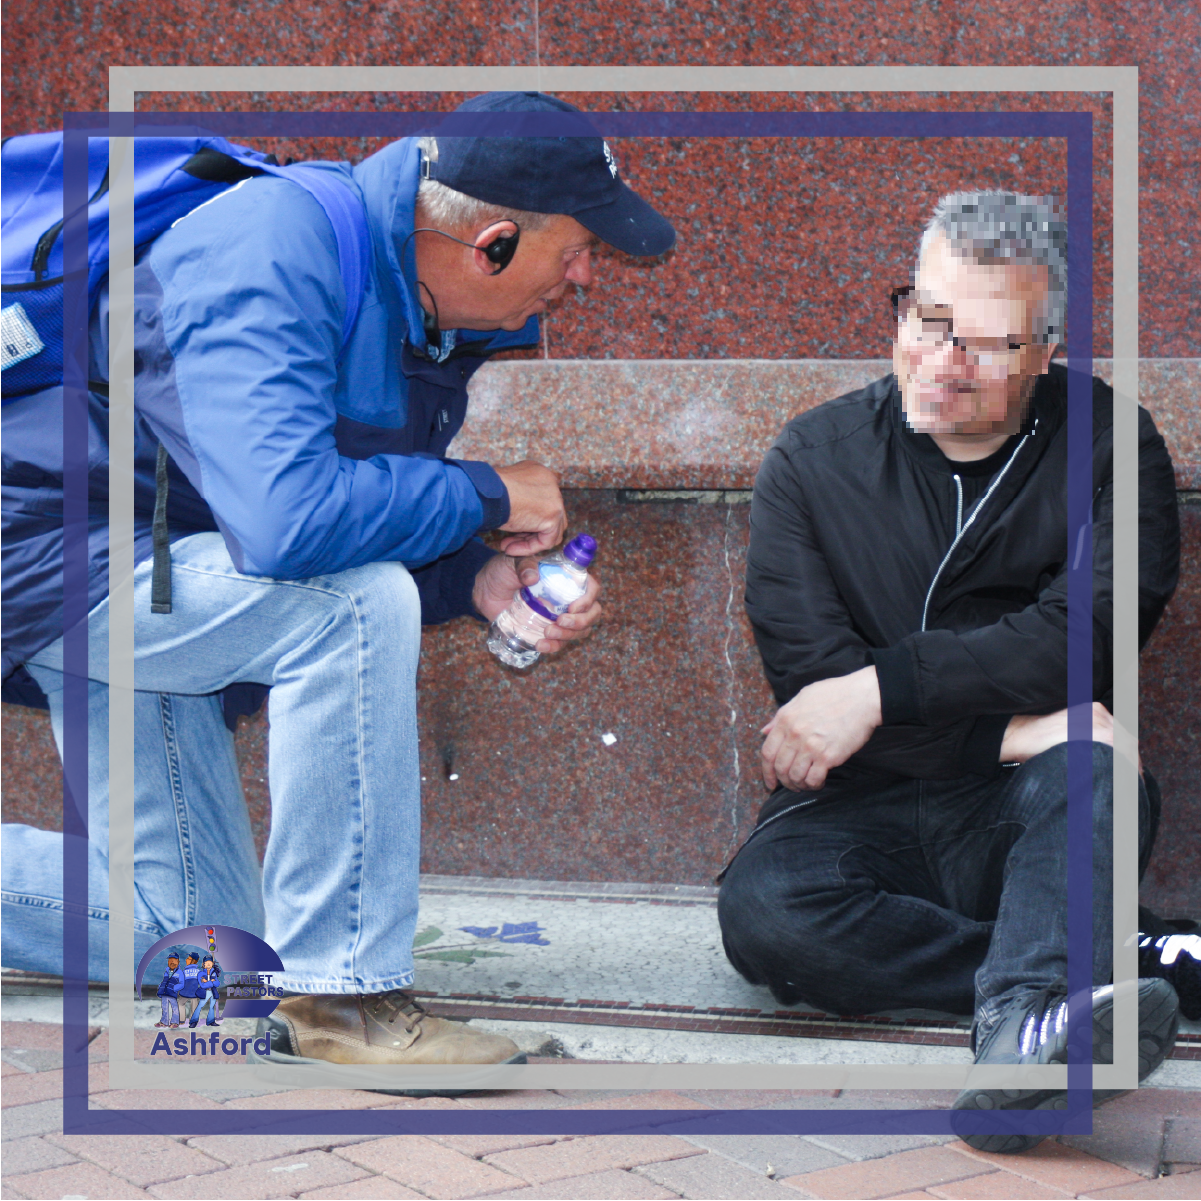 Photo: street pastor kneeling, passing someone sitting on the floor a bottle of water